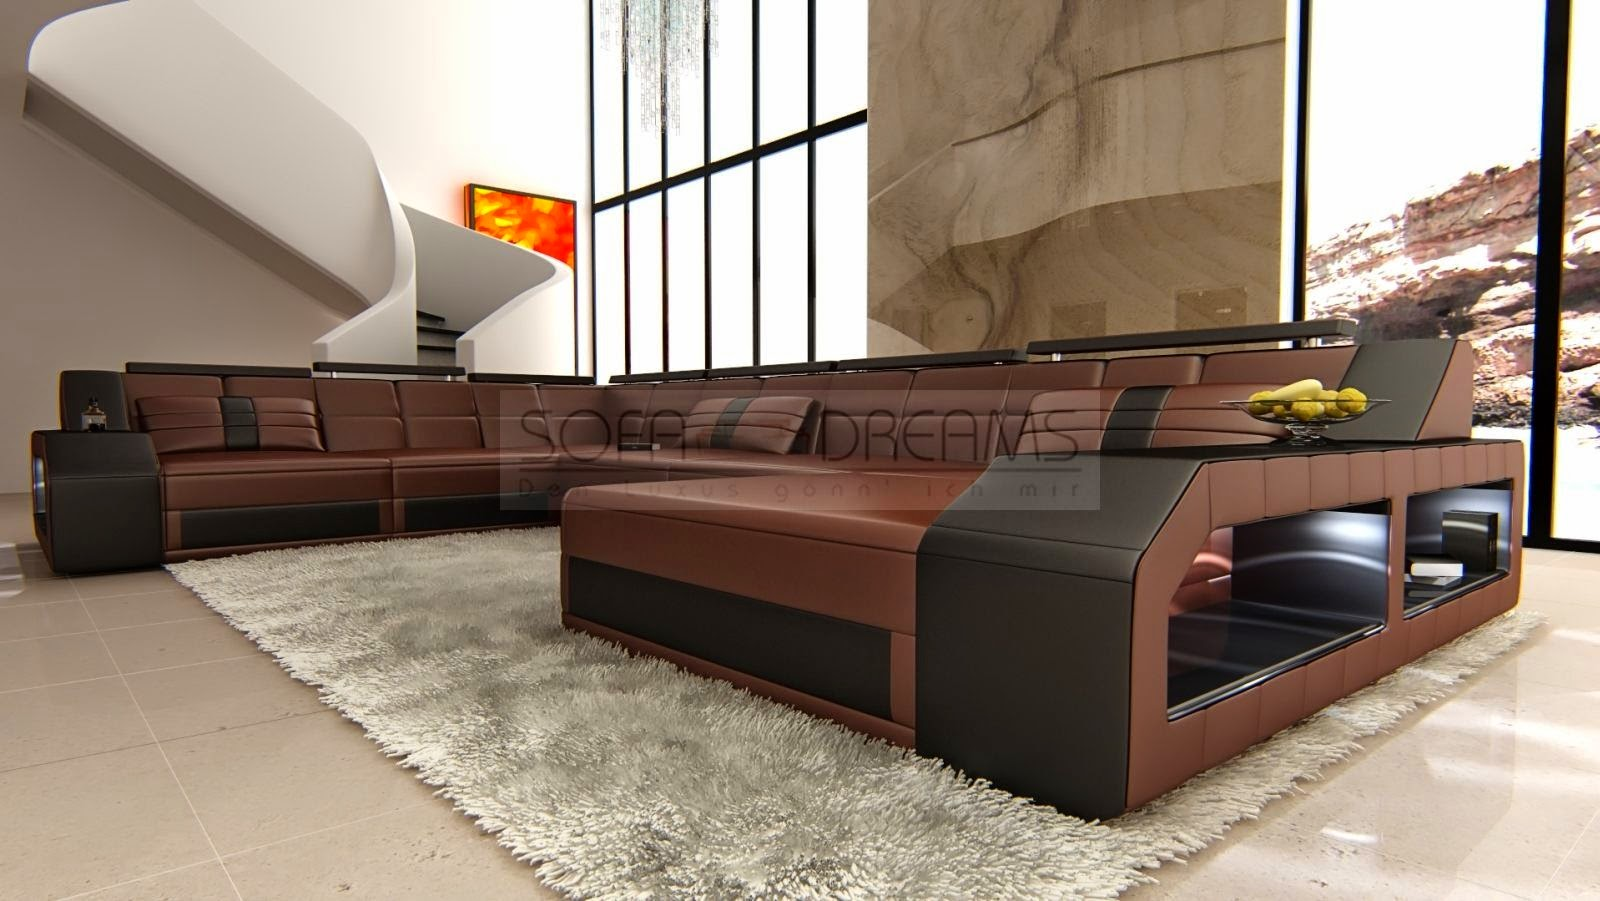 ledersofa reparieren lassen ledersofa design ledersofa kaufen deutsche dekor 2017 online. Black Bedroom Furniture Sets. Home Design Ideas